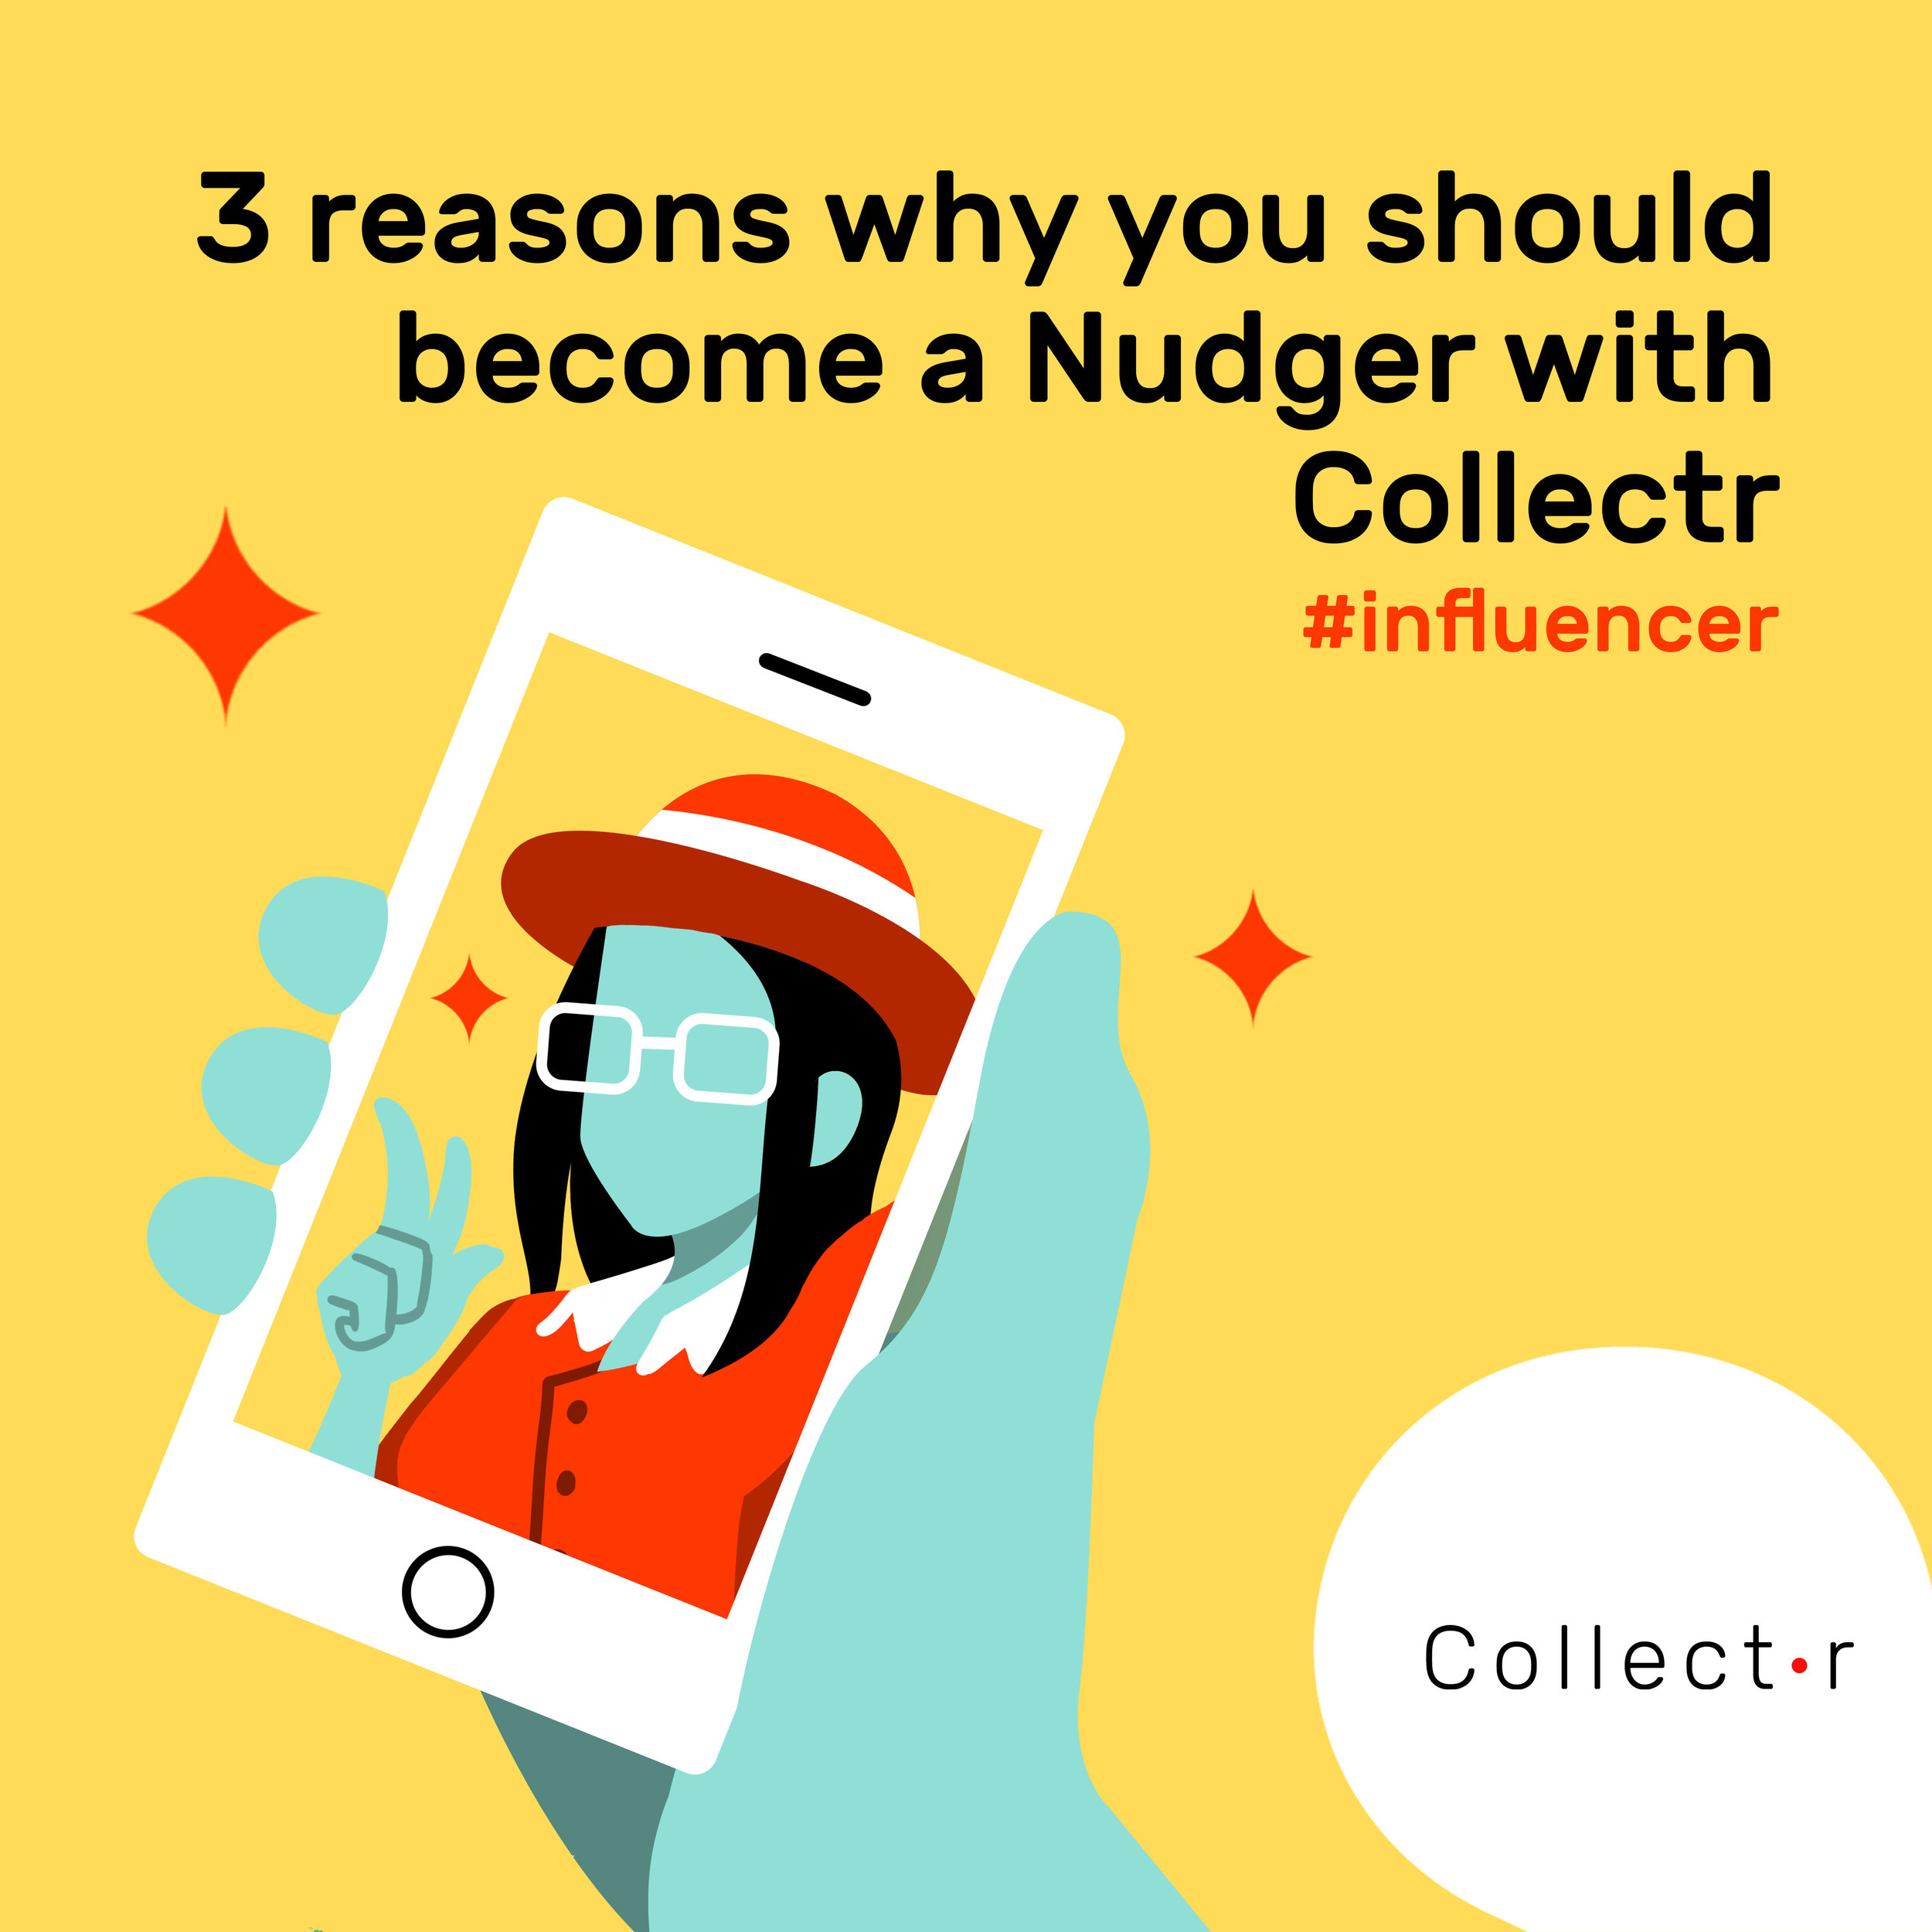 3-reasons-why-become-a-nudger-influencer-with-Collectr.jpg